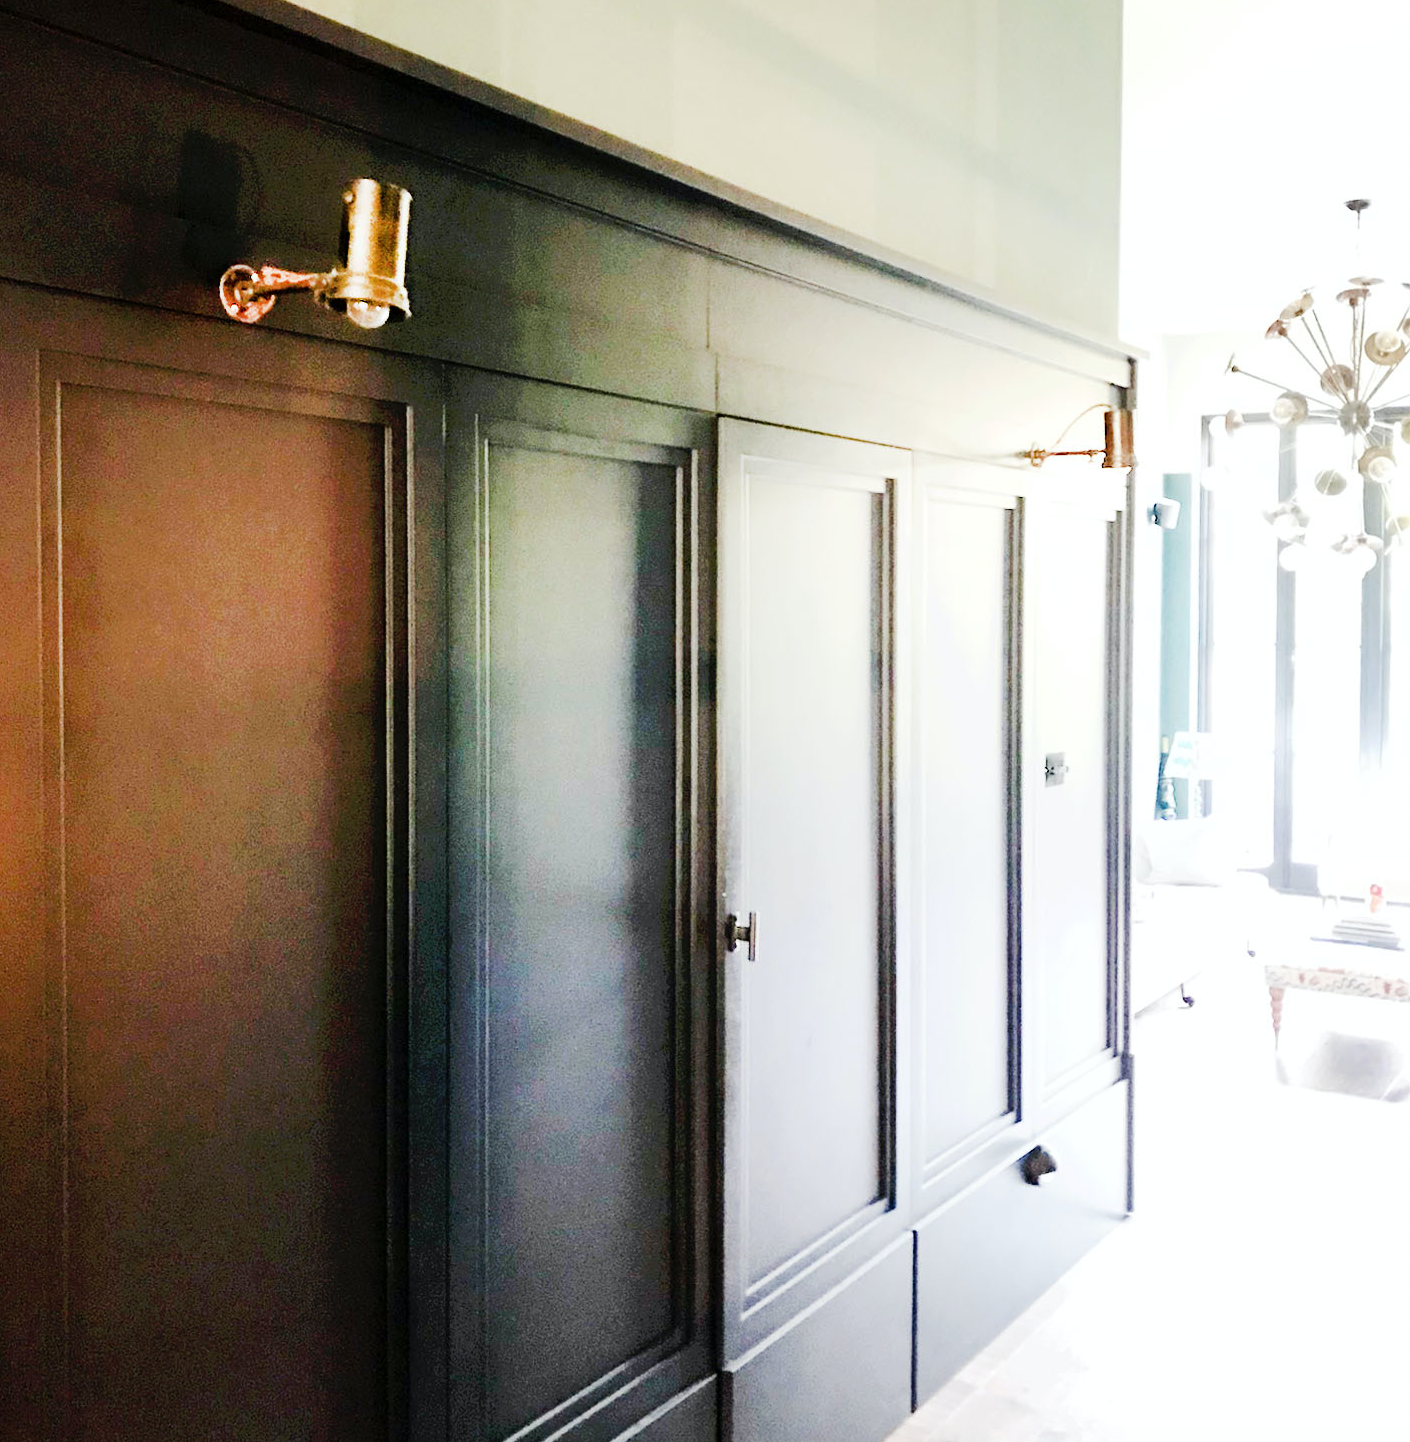 Hall, bespoke panelling was created to conceal jib door to laundry, and to create visual interest